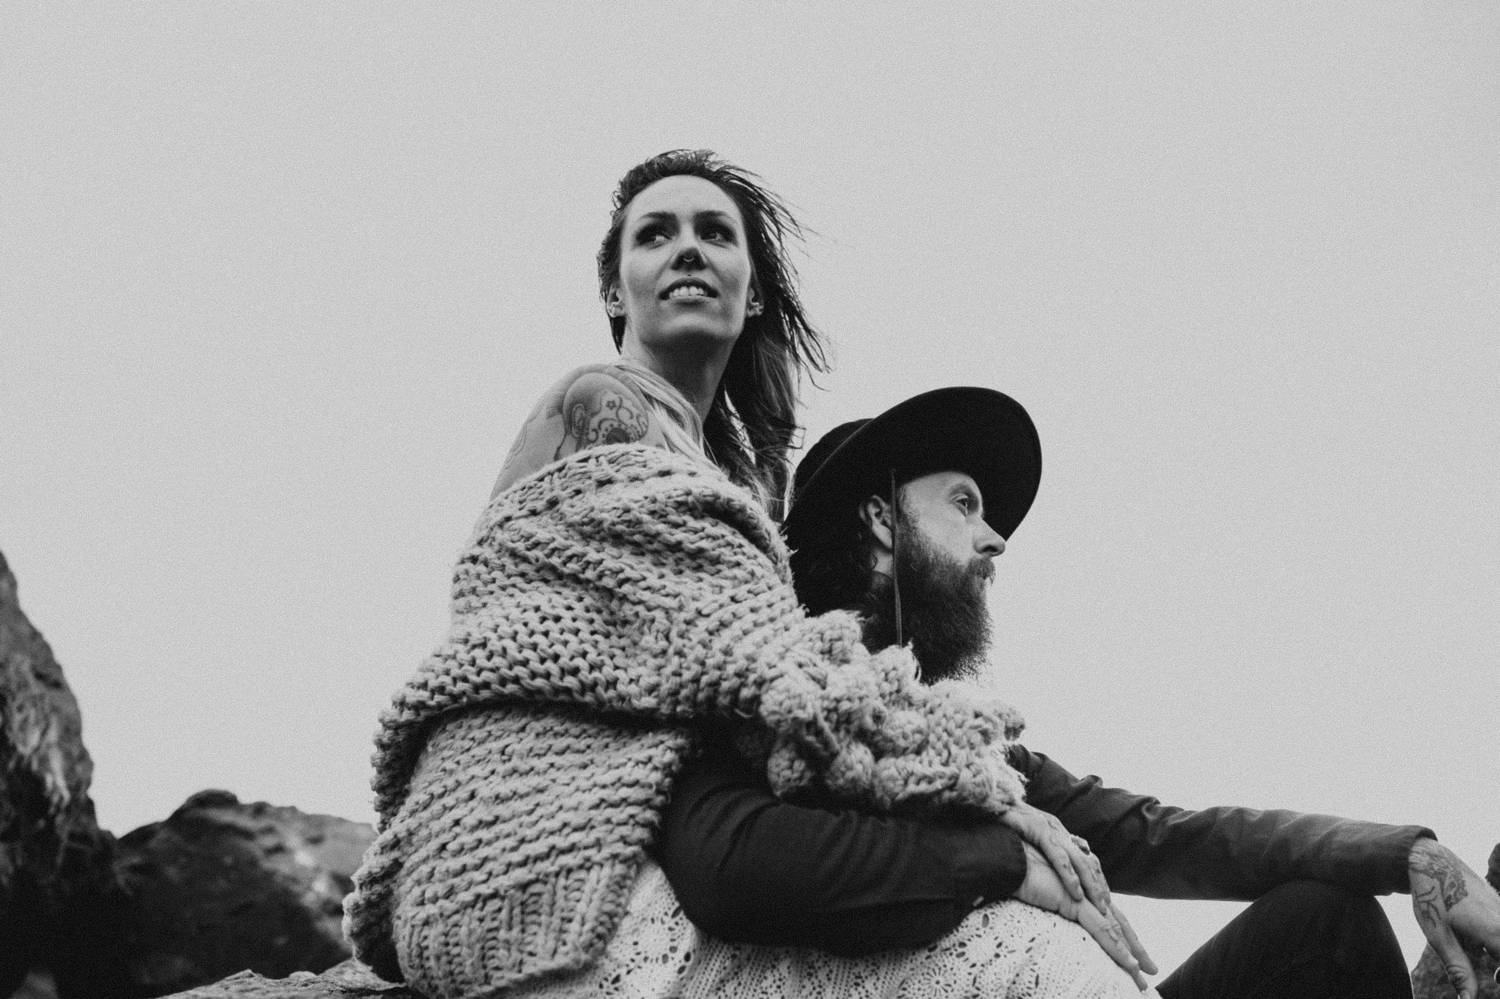 A woman in an oversized sweater sits behind a man with a beard as they sit outside against a gray sky.